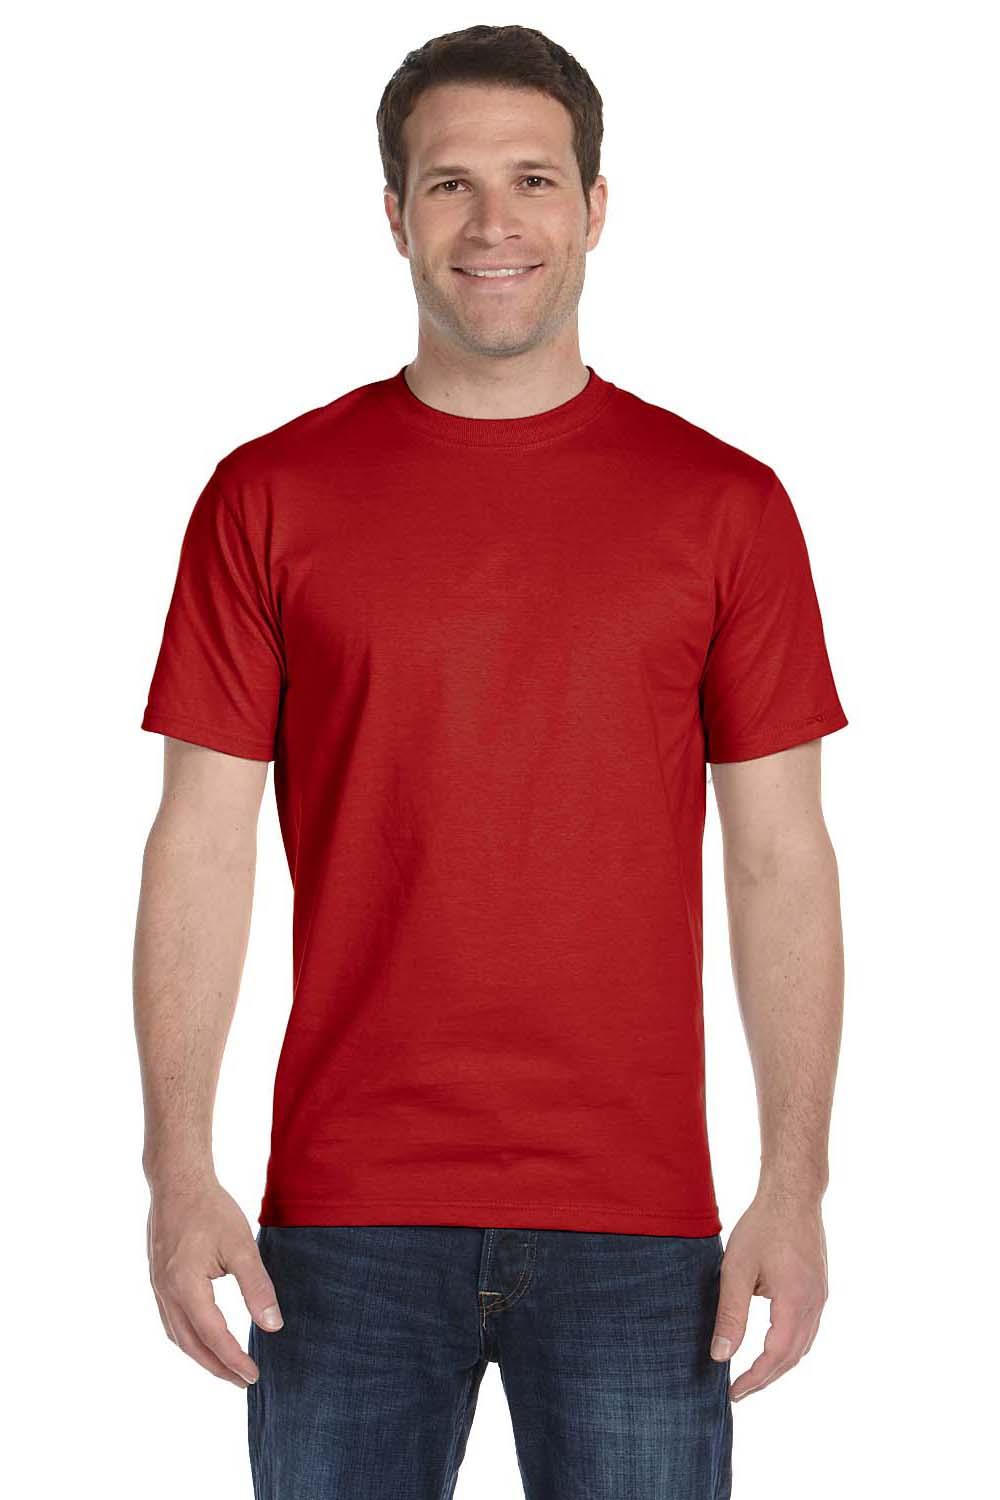 Hanes 5280 Mens ComfortSoft Short Sleeve Crewneck T-Shirt Red Front